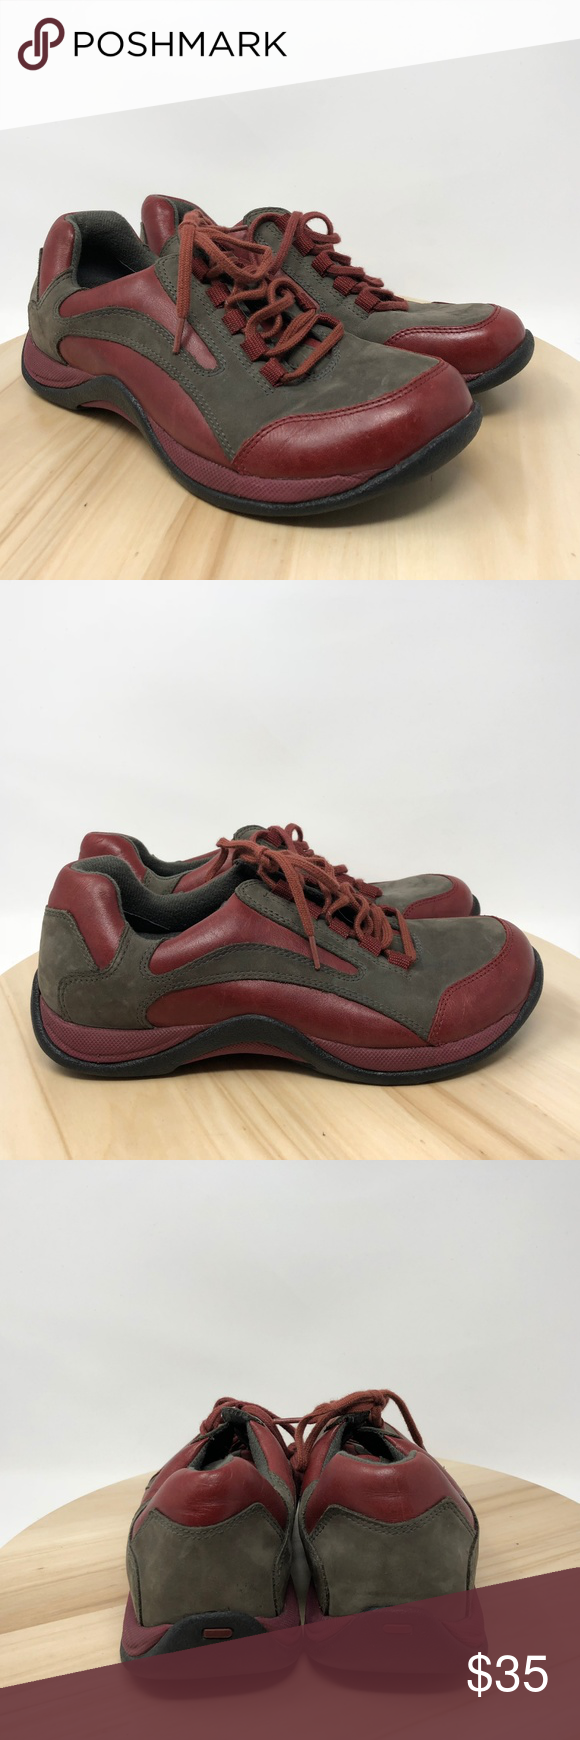 ab87c25141c5 Clarks Springer Womens Sz 7.5M Leather Sneakers R3 Clarks Springer Women s  Shoe Size 7.5M Gray Red Leather Lace Up Sneakers in good condition. These  shoes ...